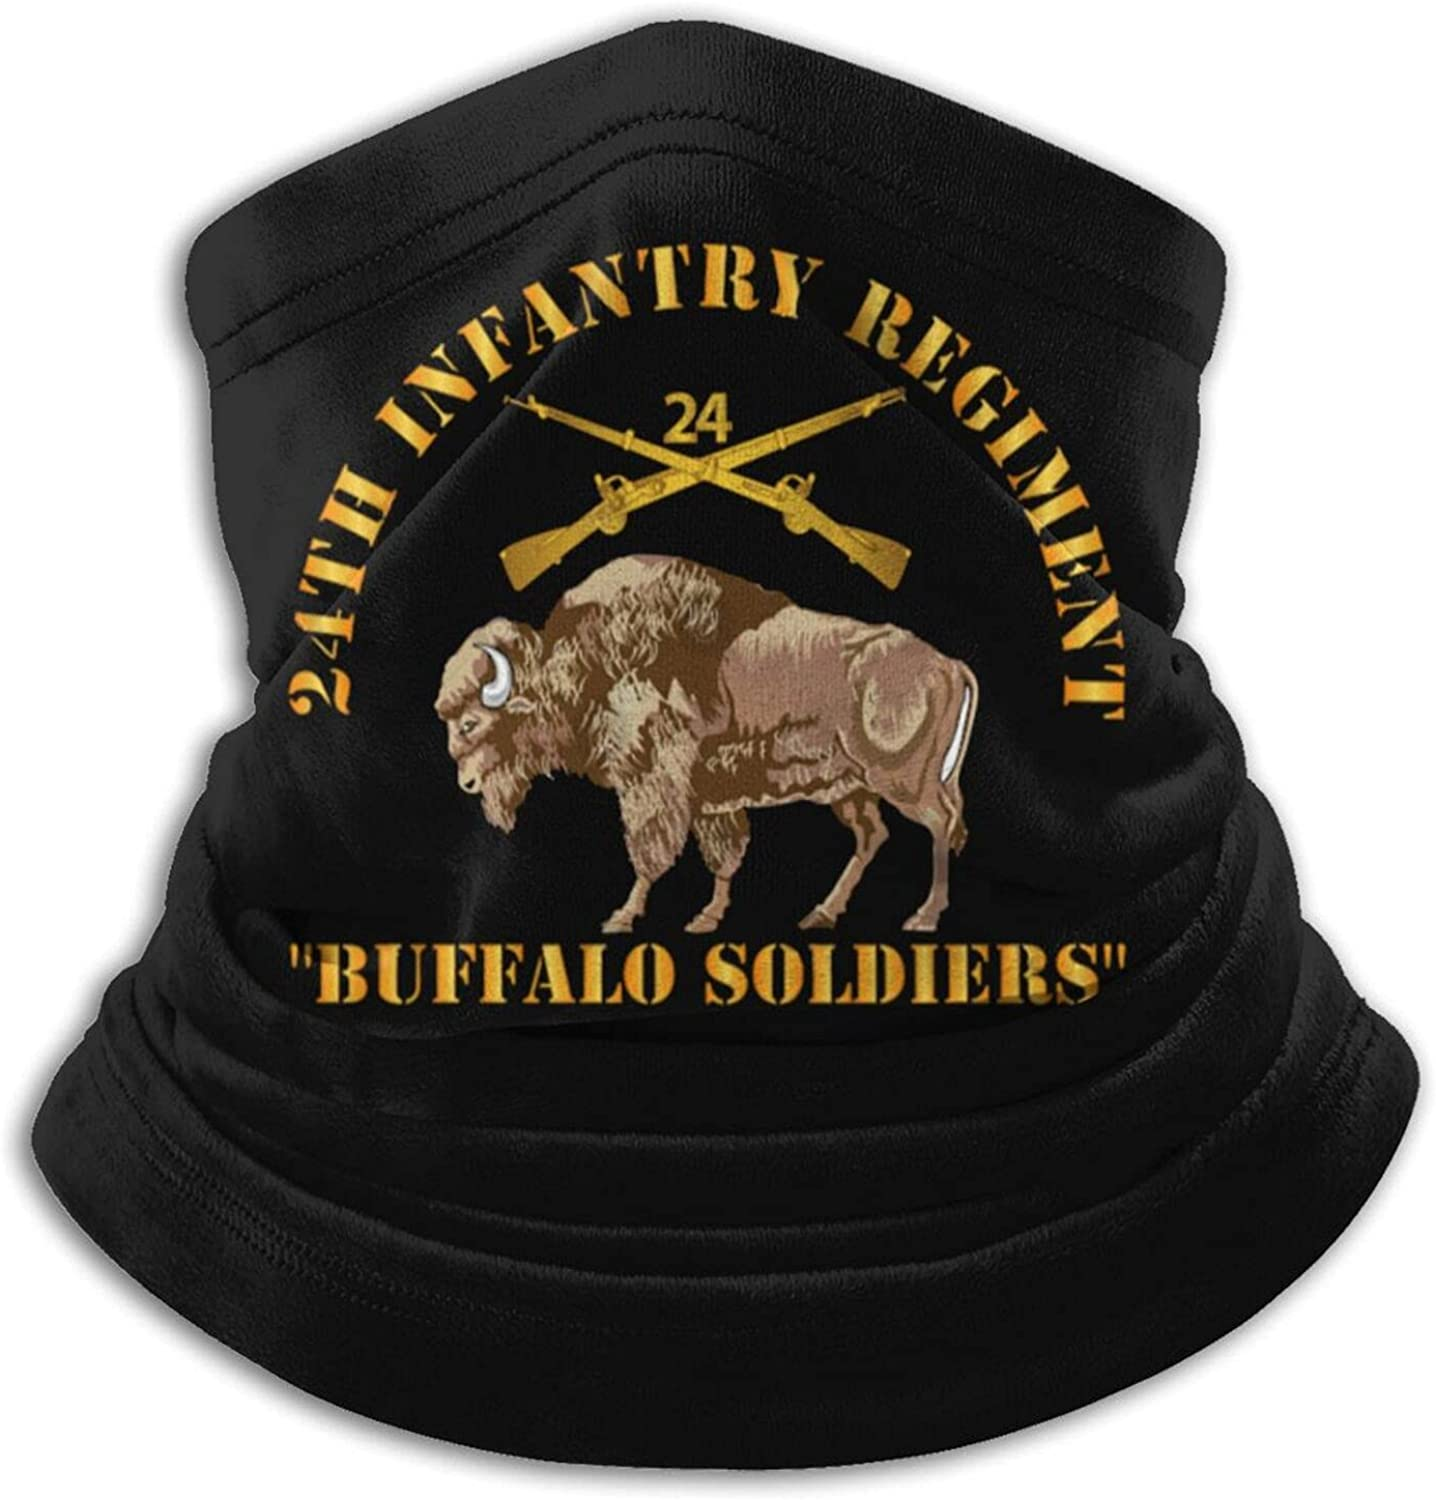 24th infantry regiment - buffalo soldiers w 24th inf branch insignia unisex winter neck gaiter face cover mask, windproof balaclava scarf for fishing, running & hiking